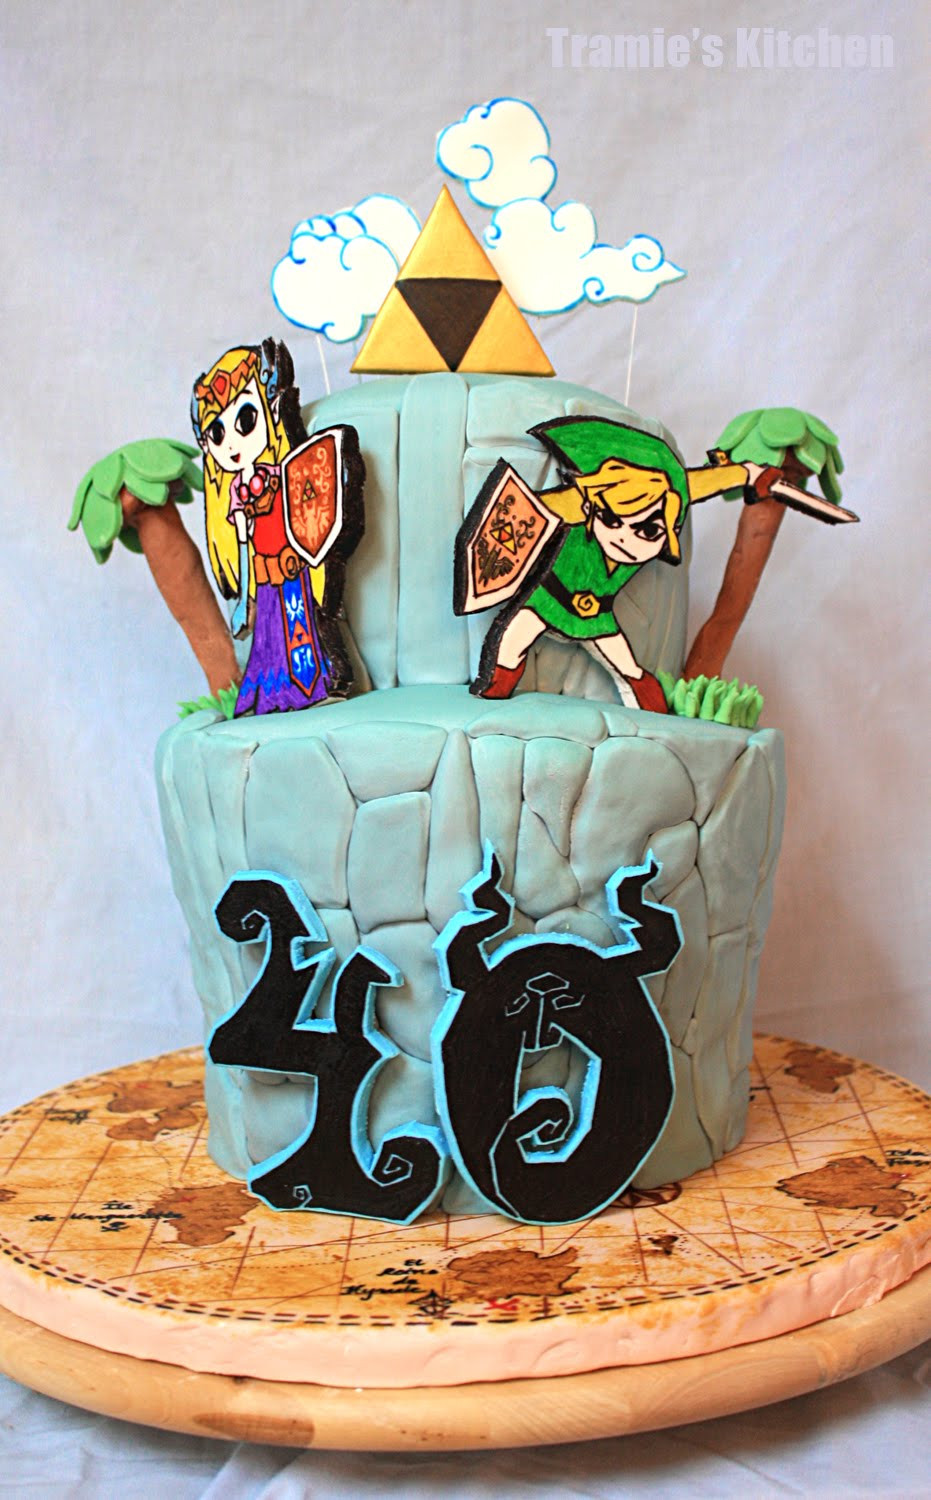 Best ideas about Zelda Birthday Cake . Save or Pin Tramie s Kitchen Apologizing with good news Now.